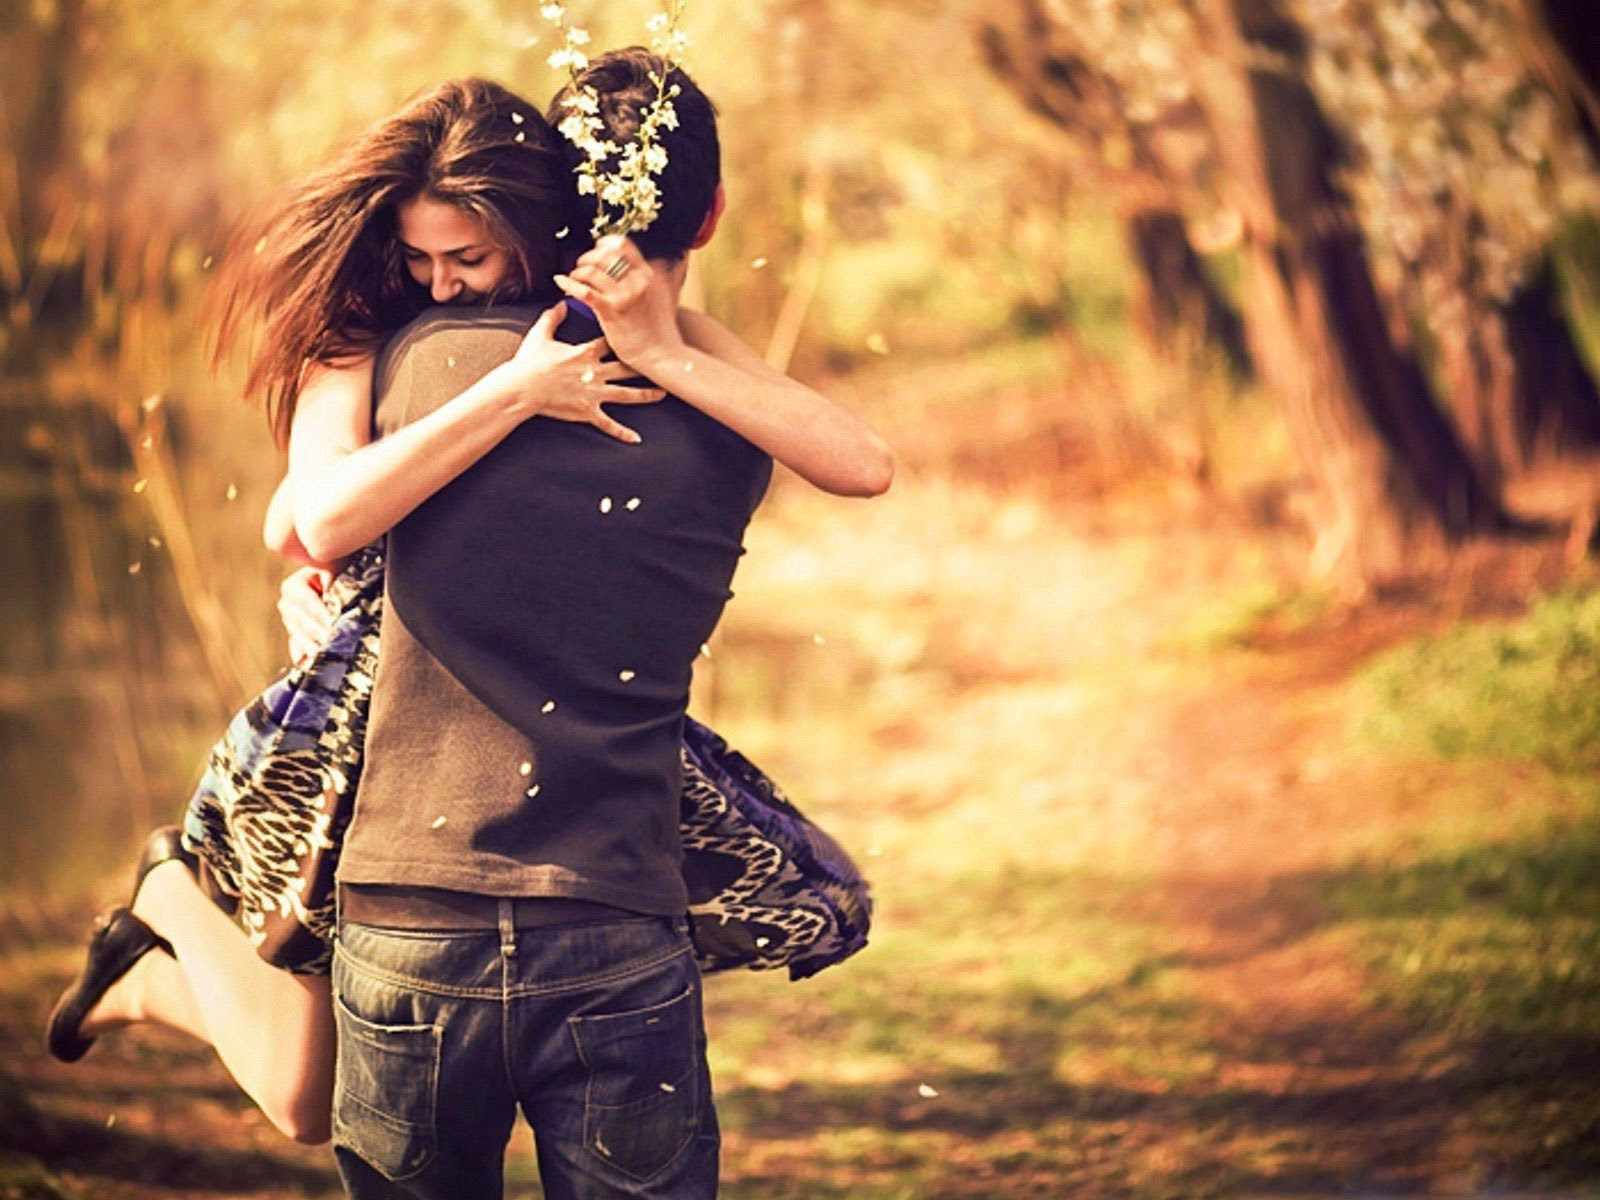 3d Love Couple Animated Hd Pictures Wallpapers: Free Download HD Wallpapers: March 2015